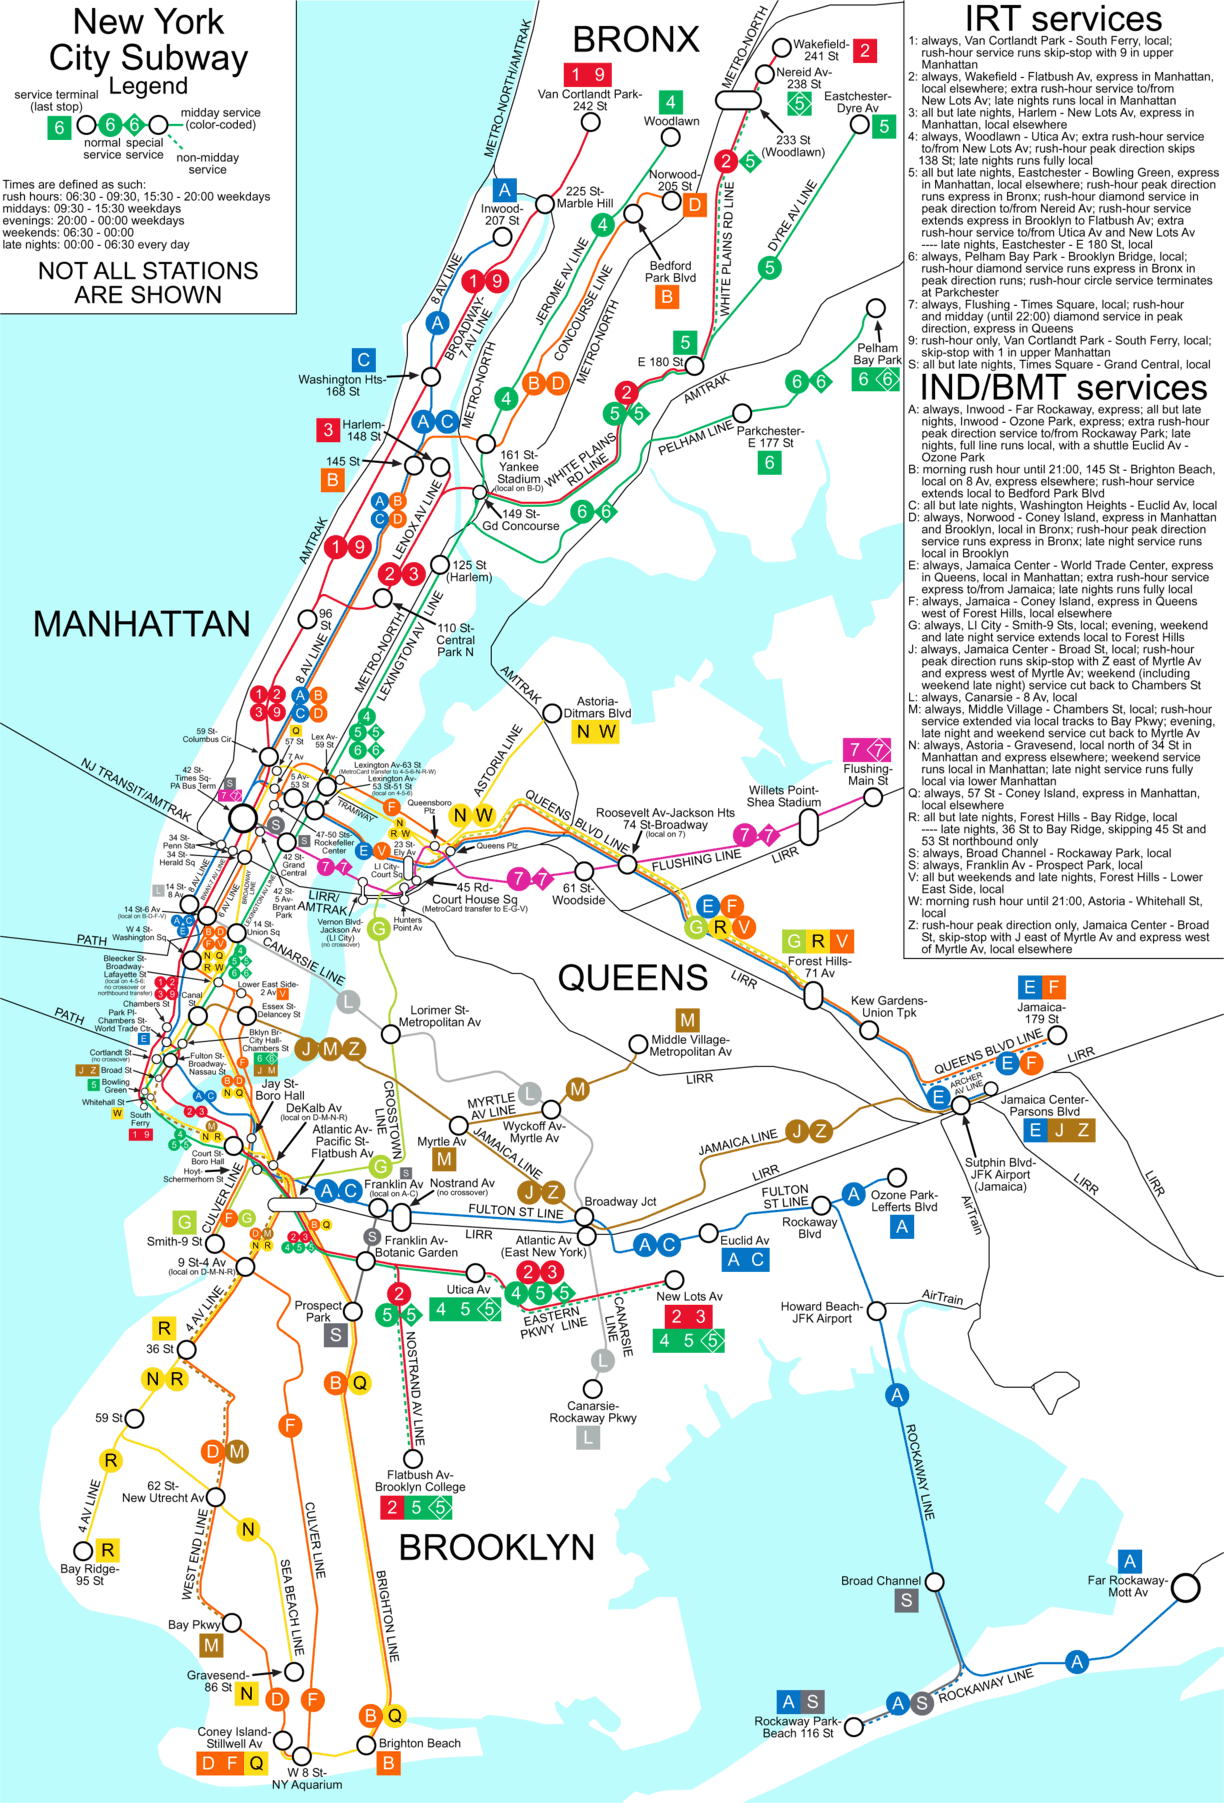 New York City Subway Map New York City NY mappery – Map New York City Subway